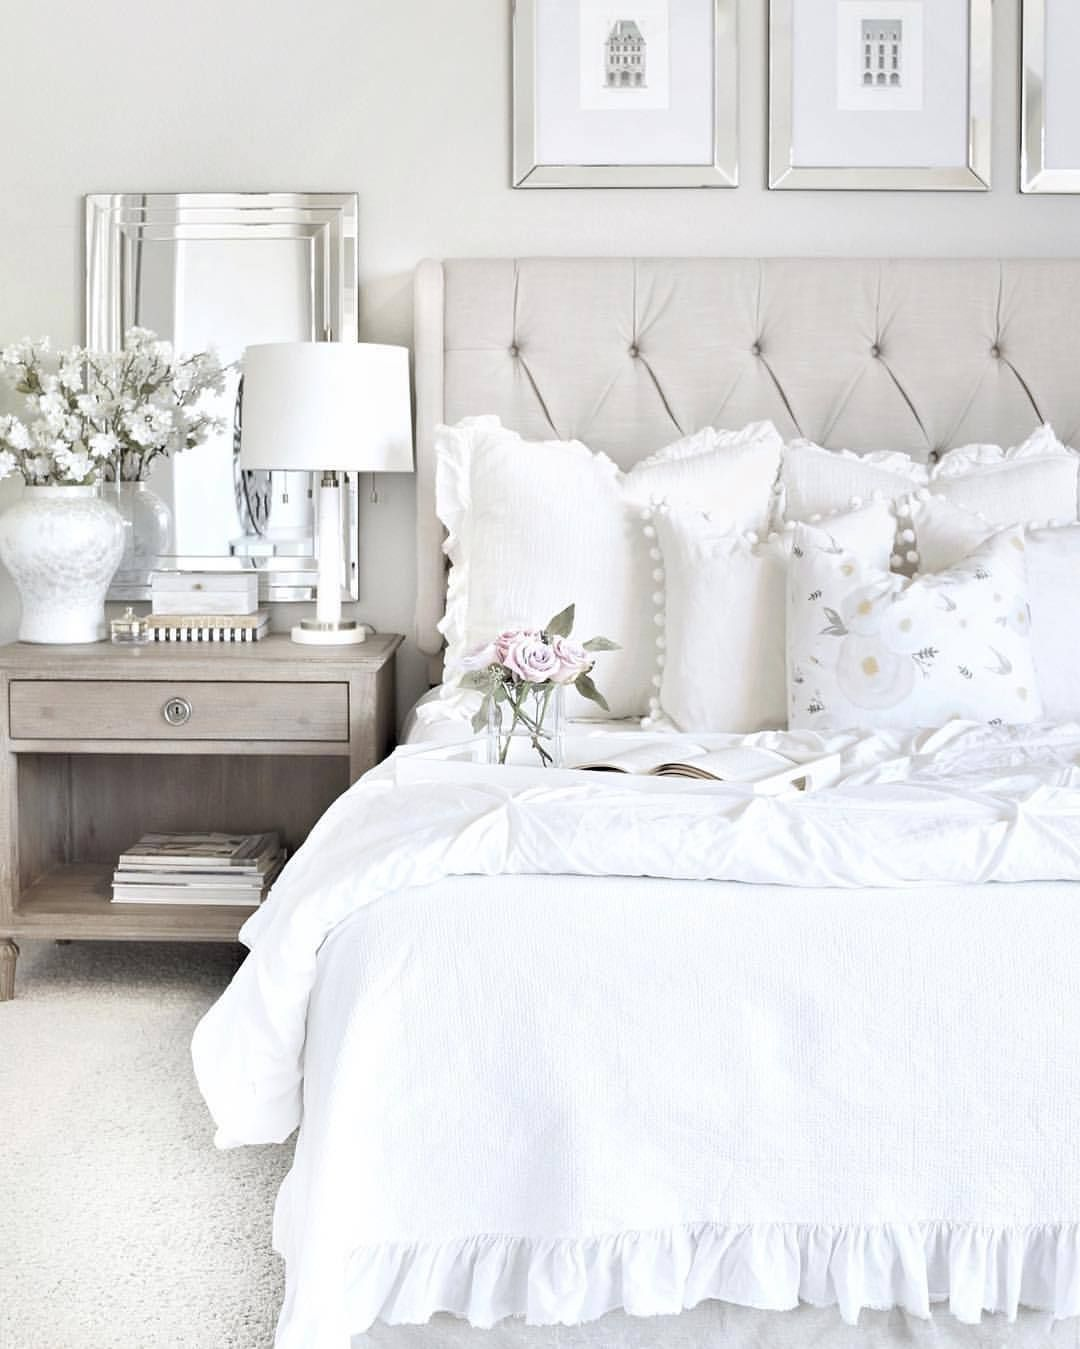 Home interior ideas for bedrooms heminspiration inspiration for your home u by mytexashouse